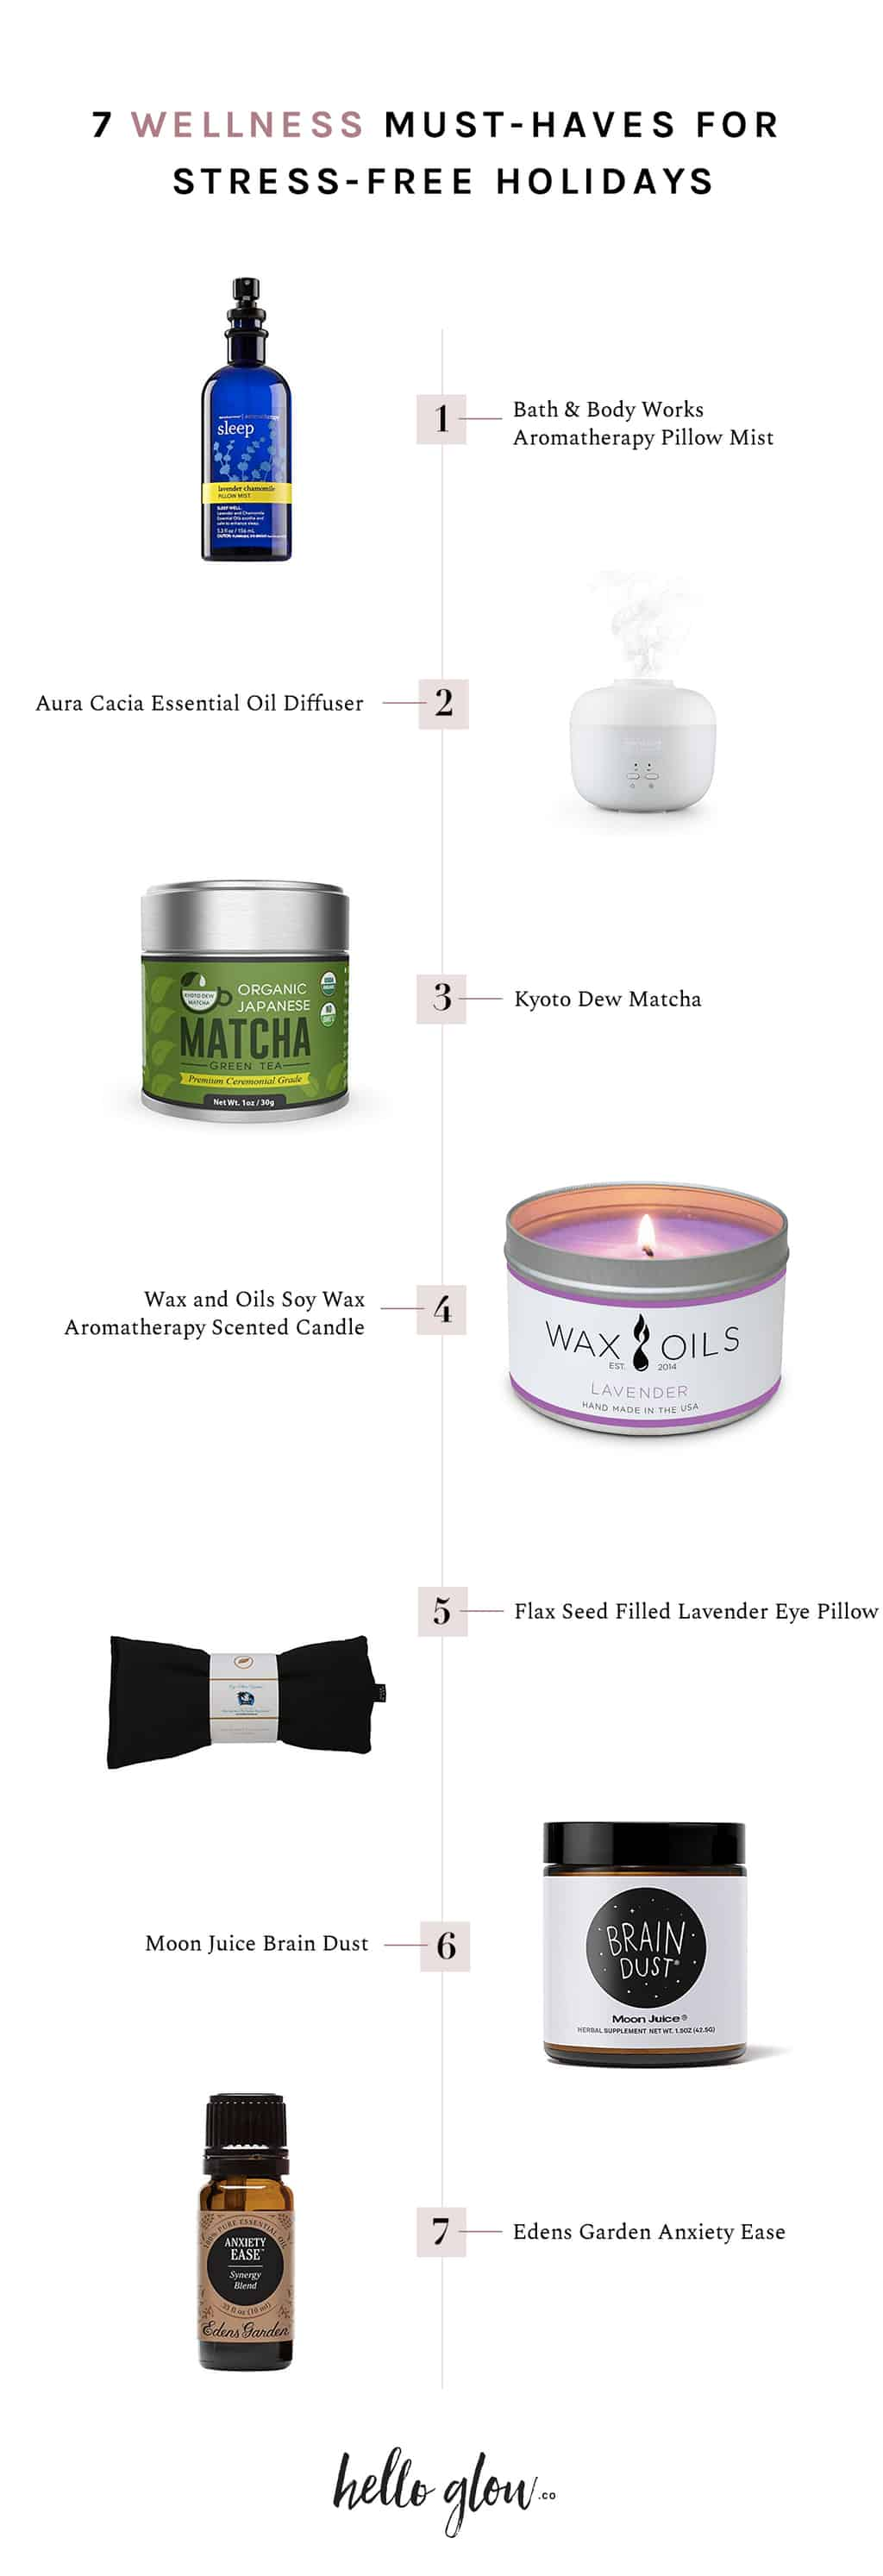 Holiday Wellness Must-Haves